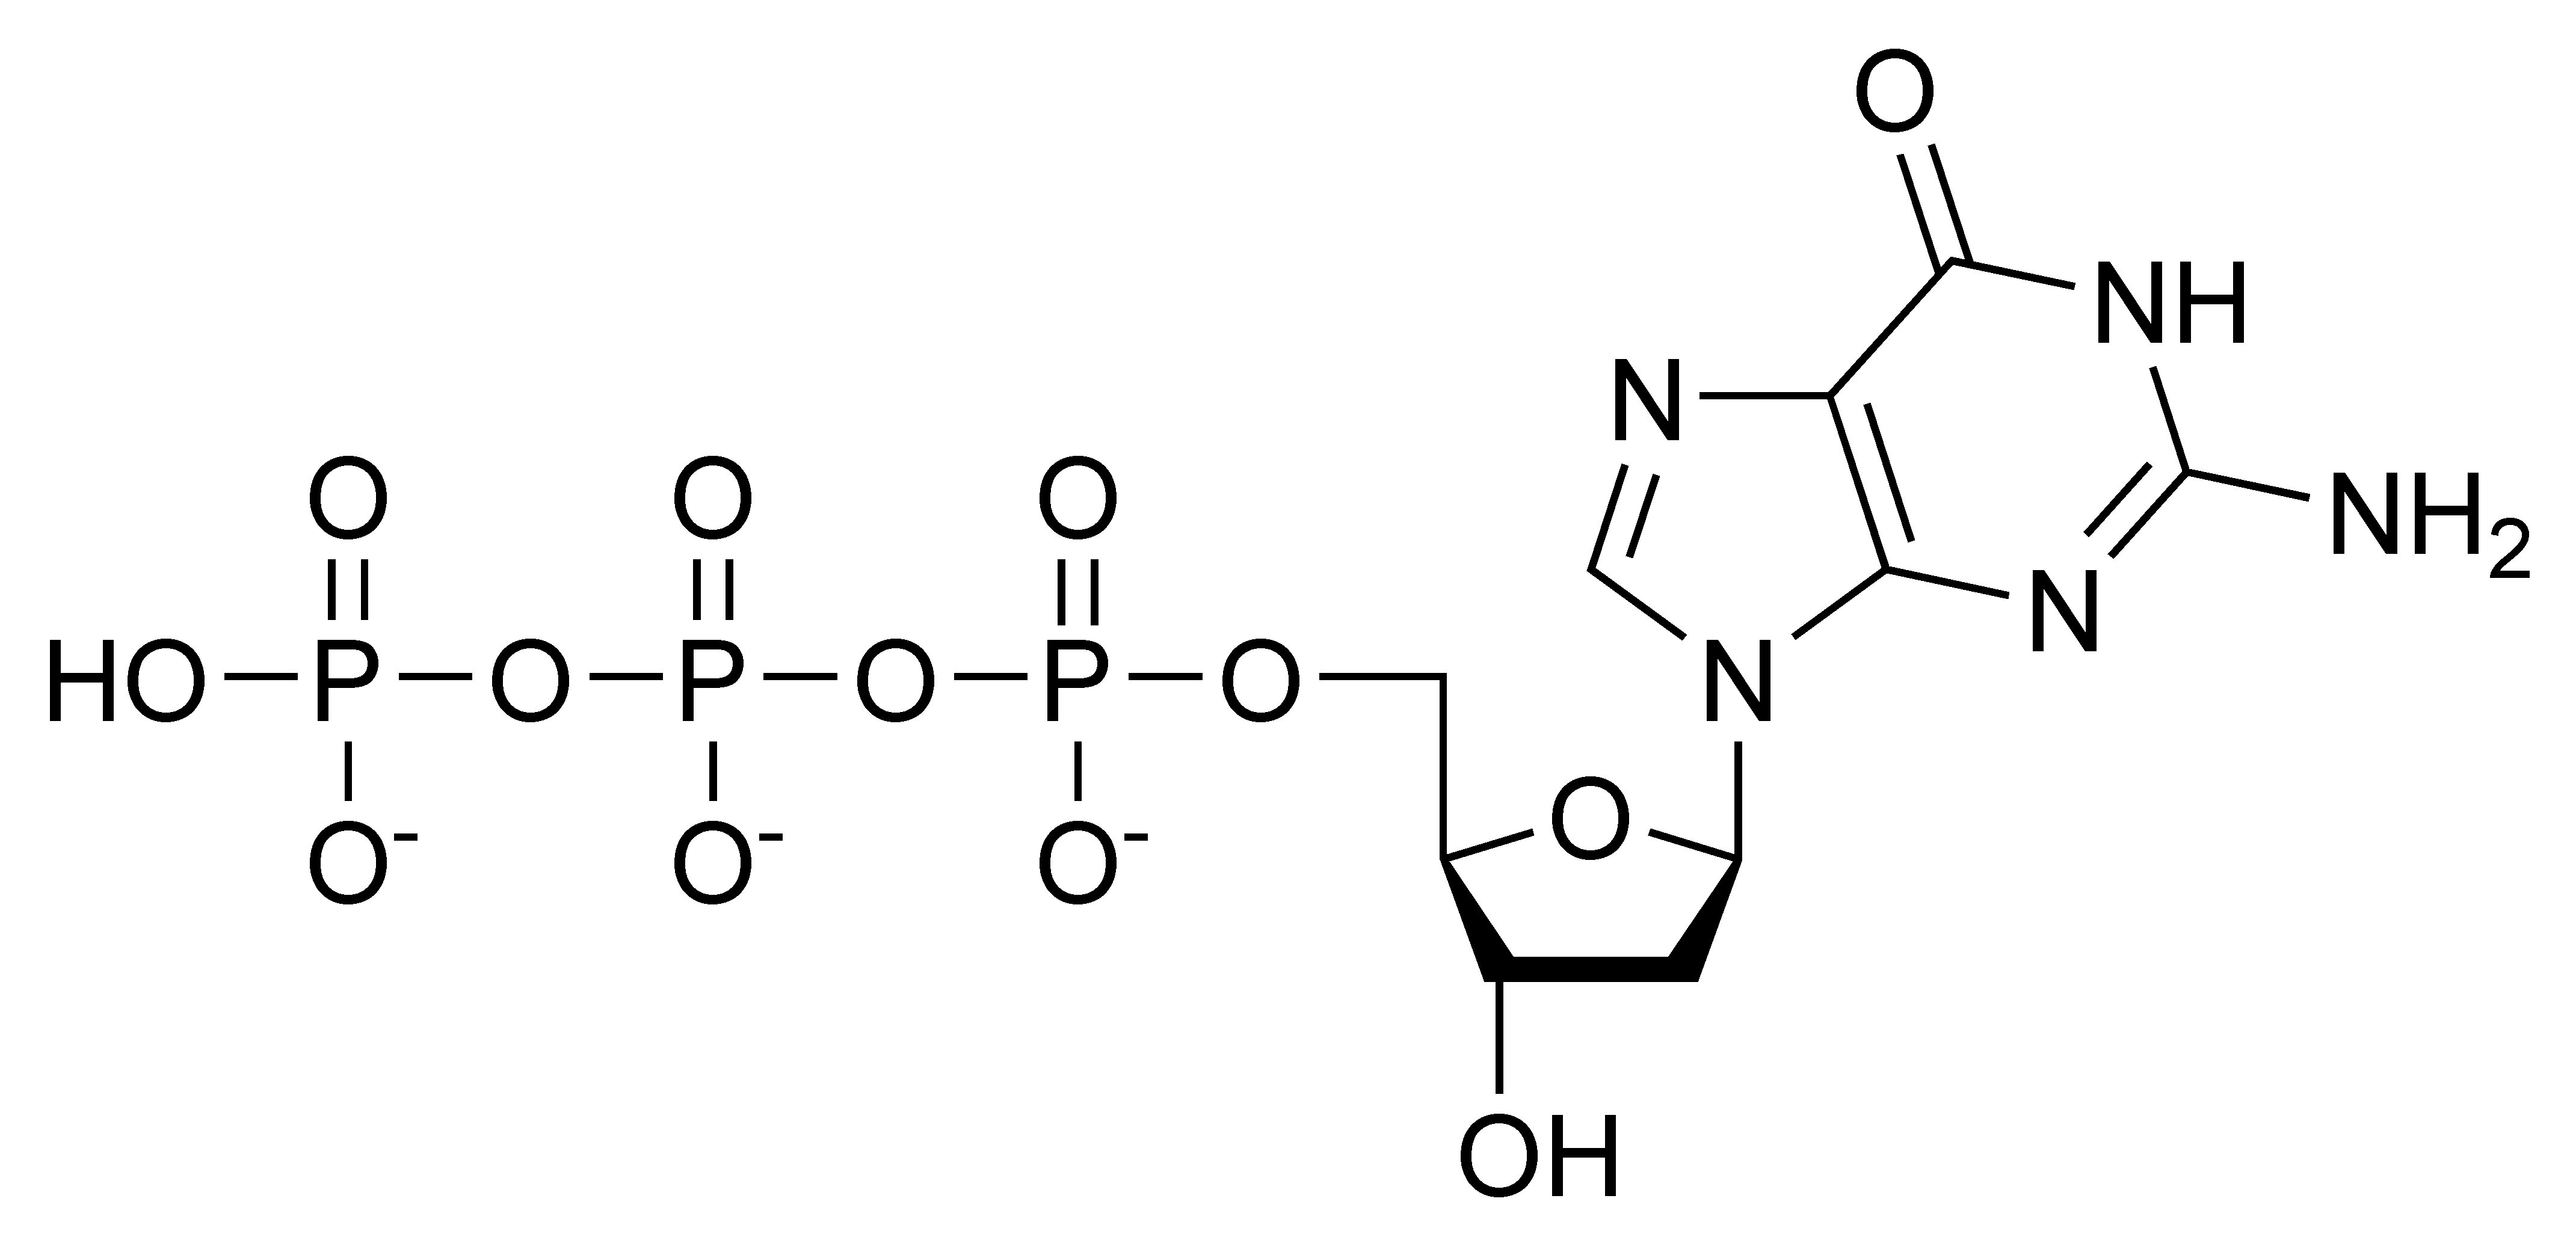 Chemical structure of deoxyguanosine triphosphate